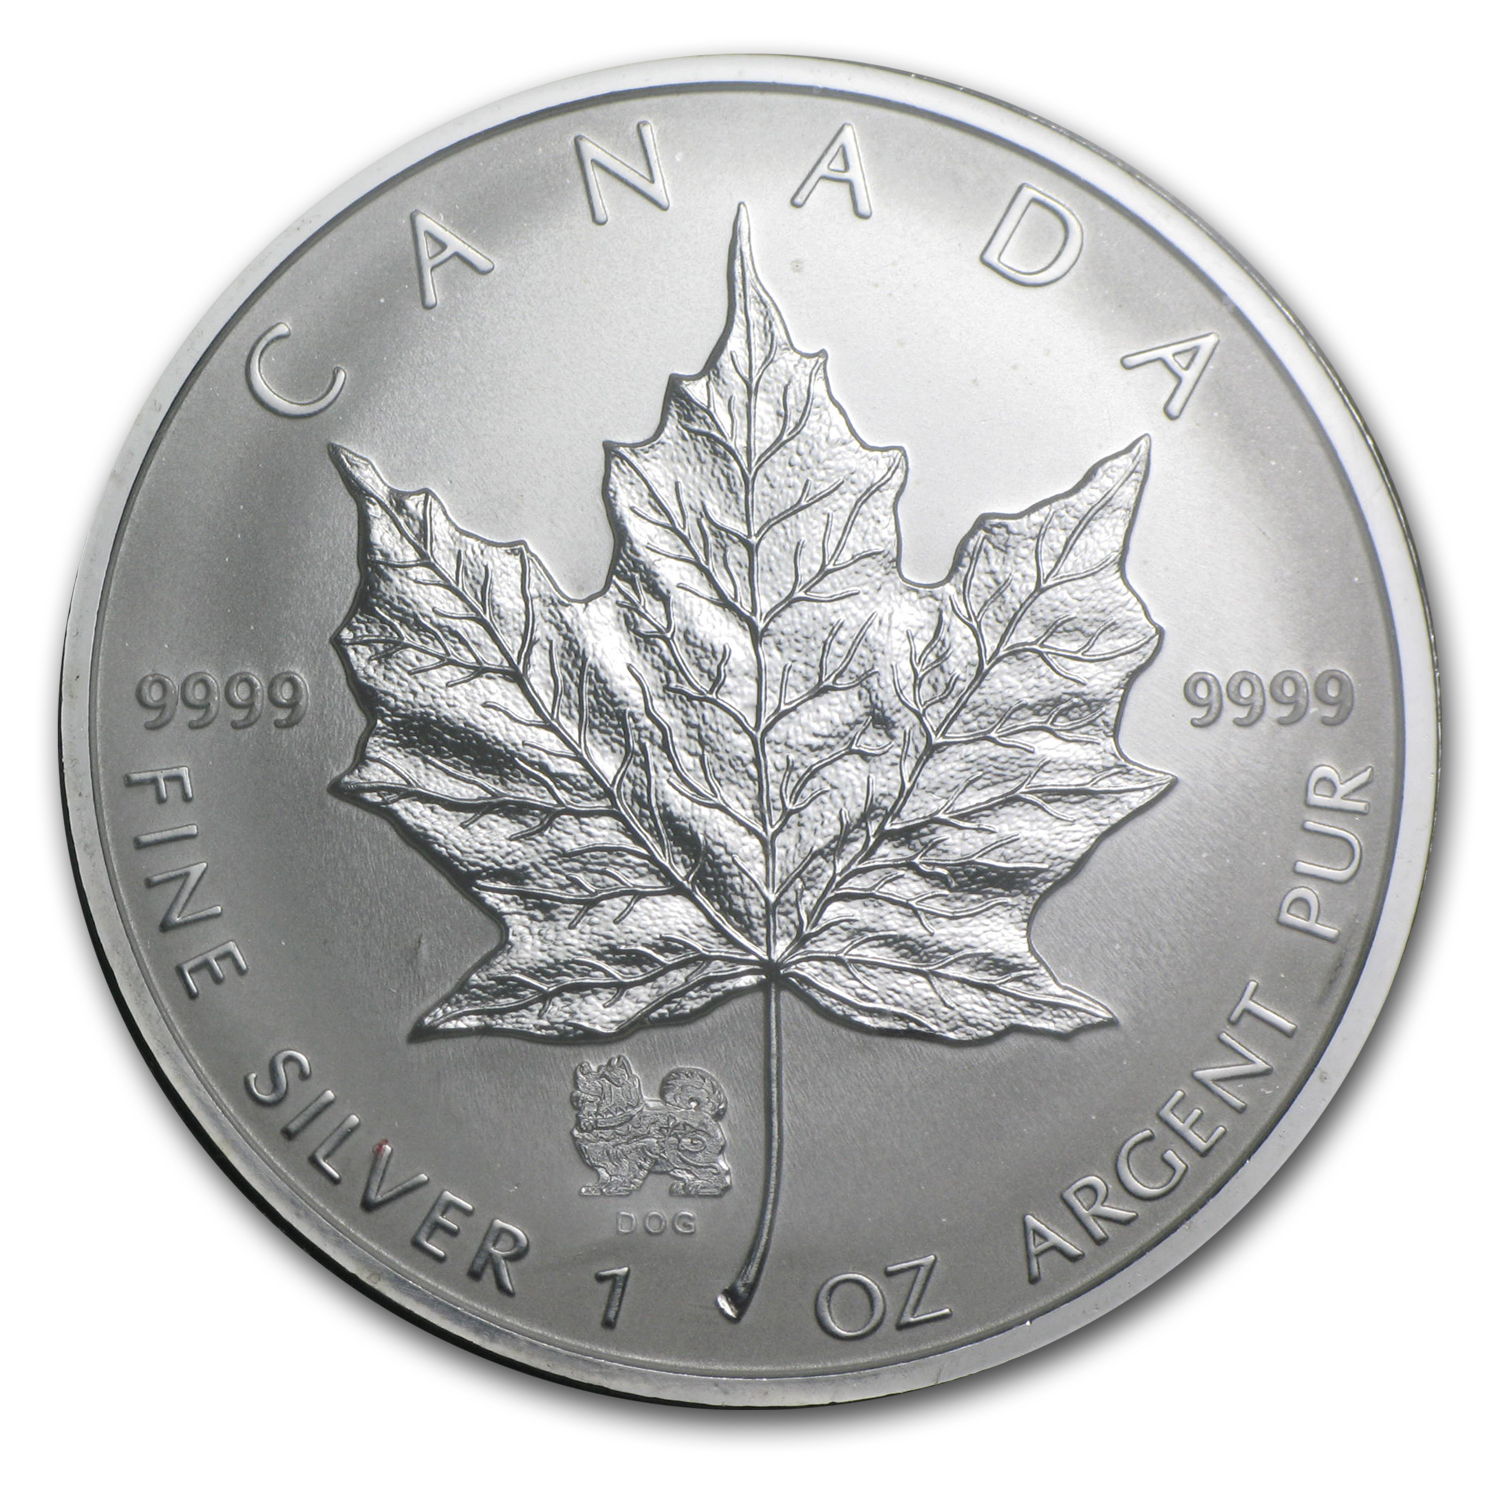 2006 1 oz Silver Canadian Maple Leaf - Lunar DOG Privy